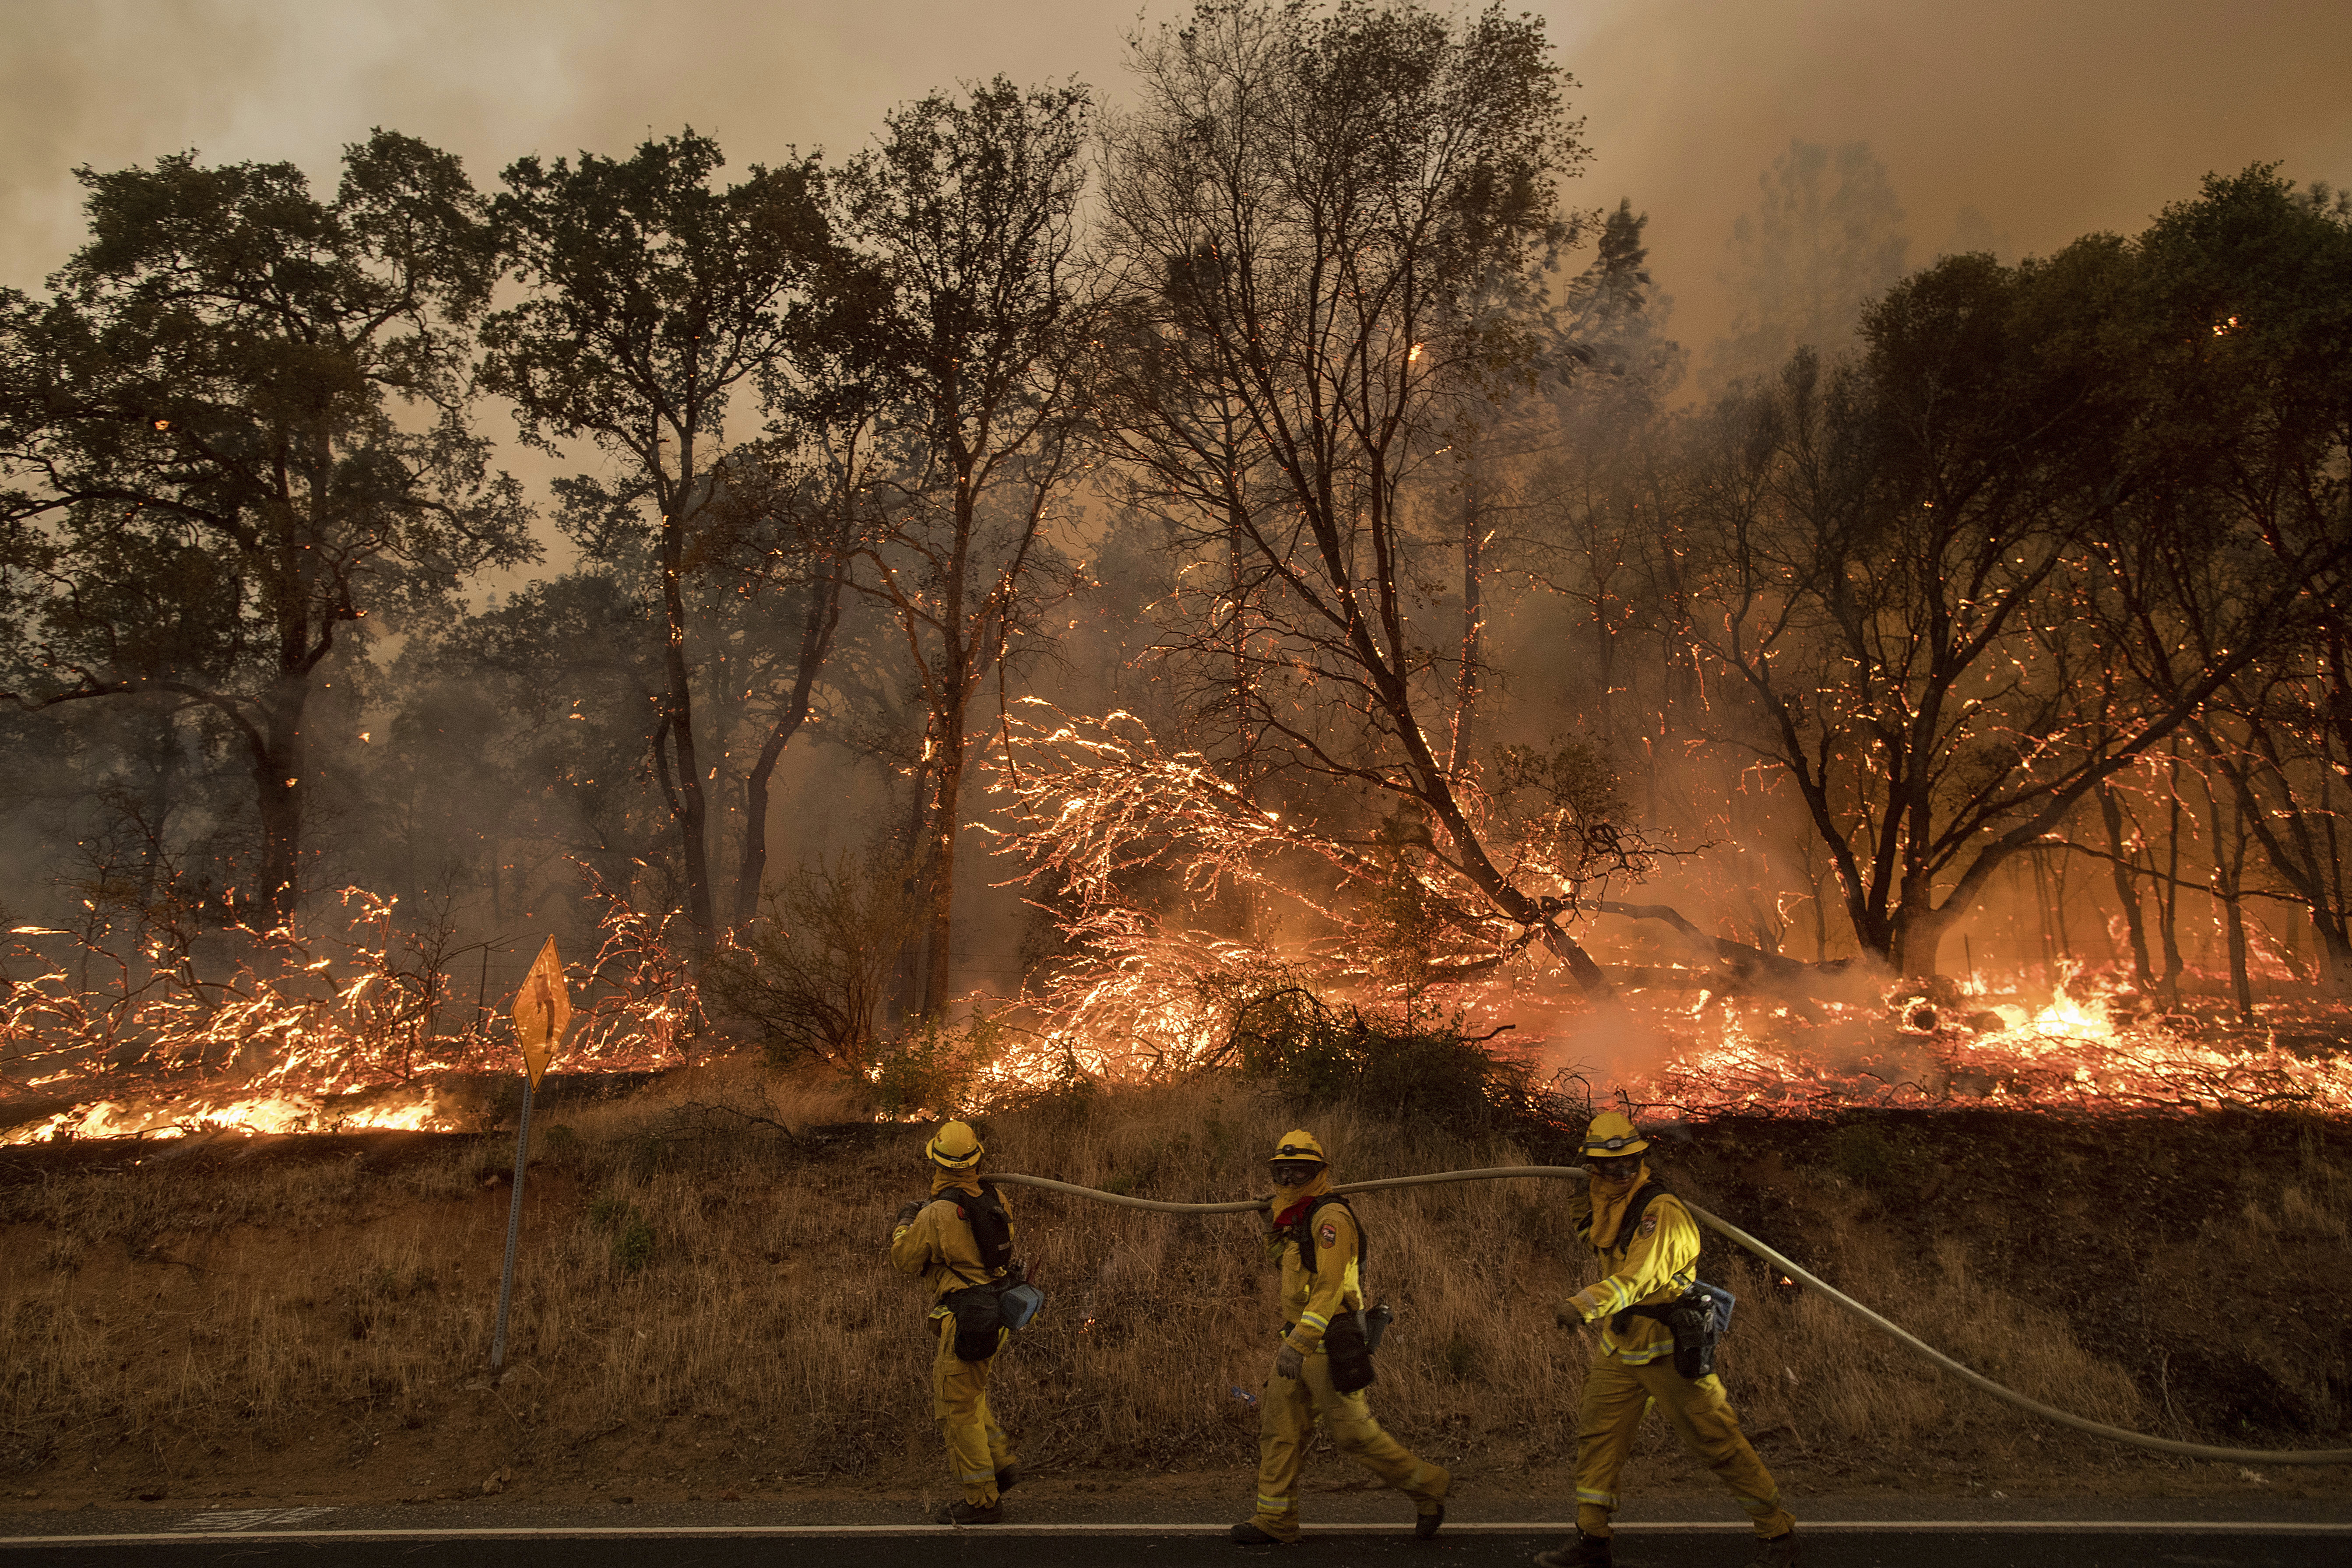 Firefighters battle a wildfire as it threatens to jump a street near Oroville, Calif., on Saturday, July 8, 2017.